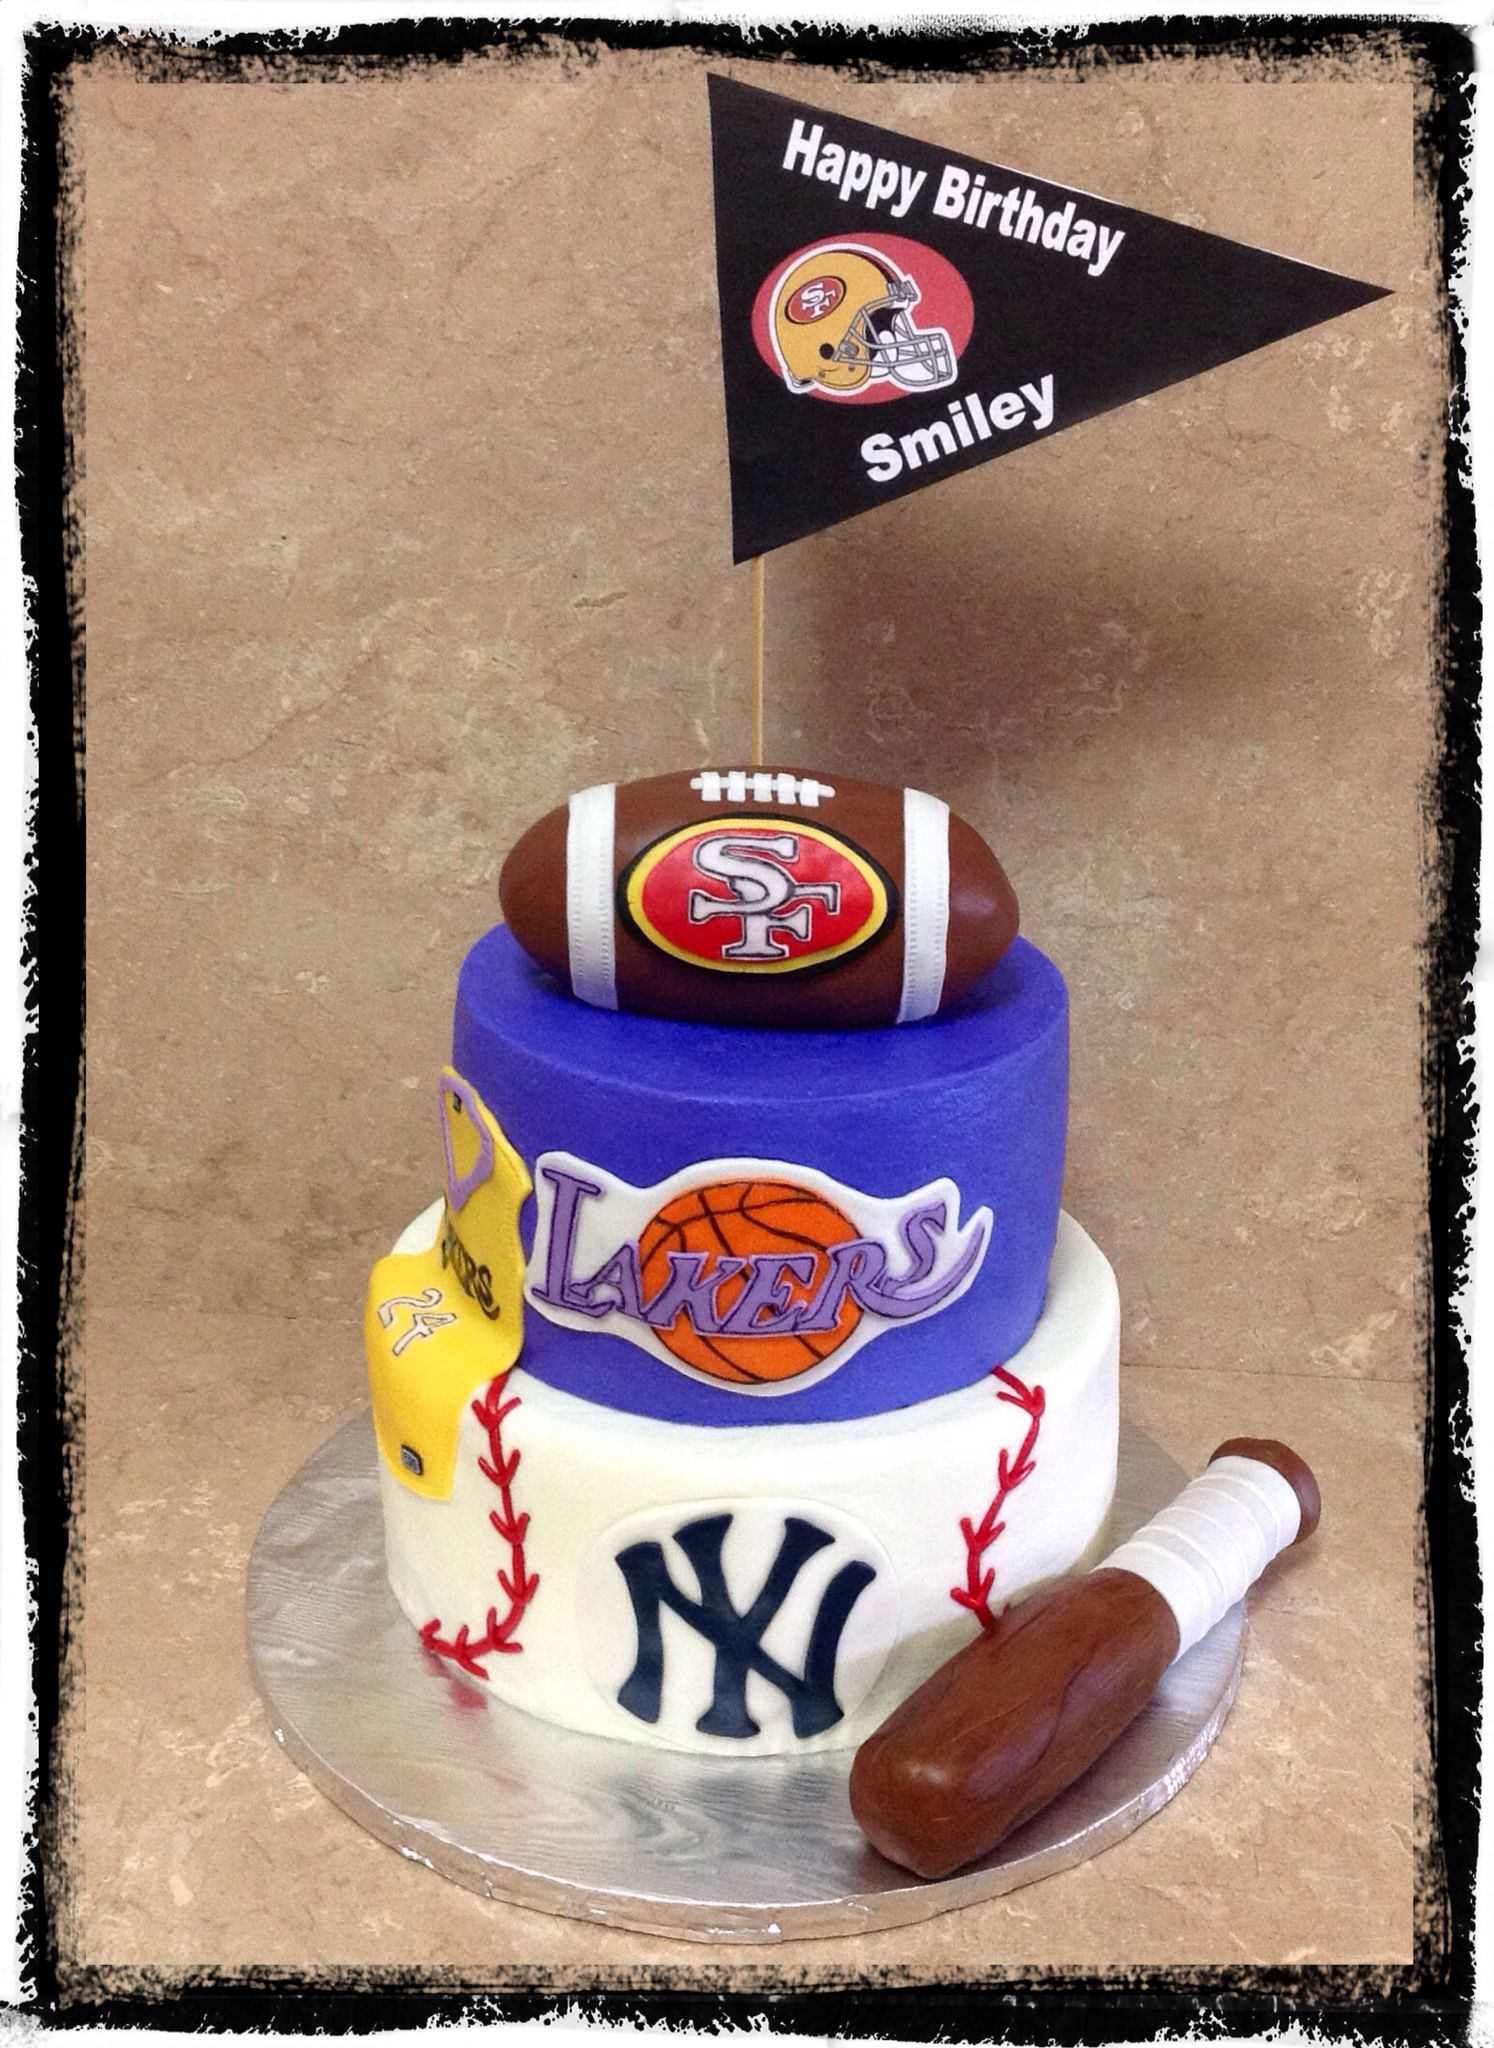 Sports Theme Birthday Cake 49ers Lakers Yankees Happy Birthday Smiley Sports Theme Birthday Birthday Smiley